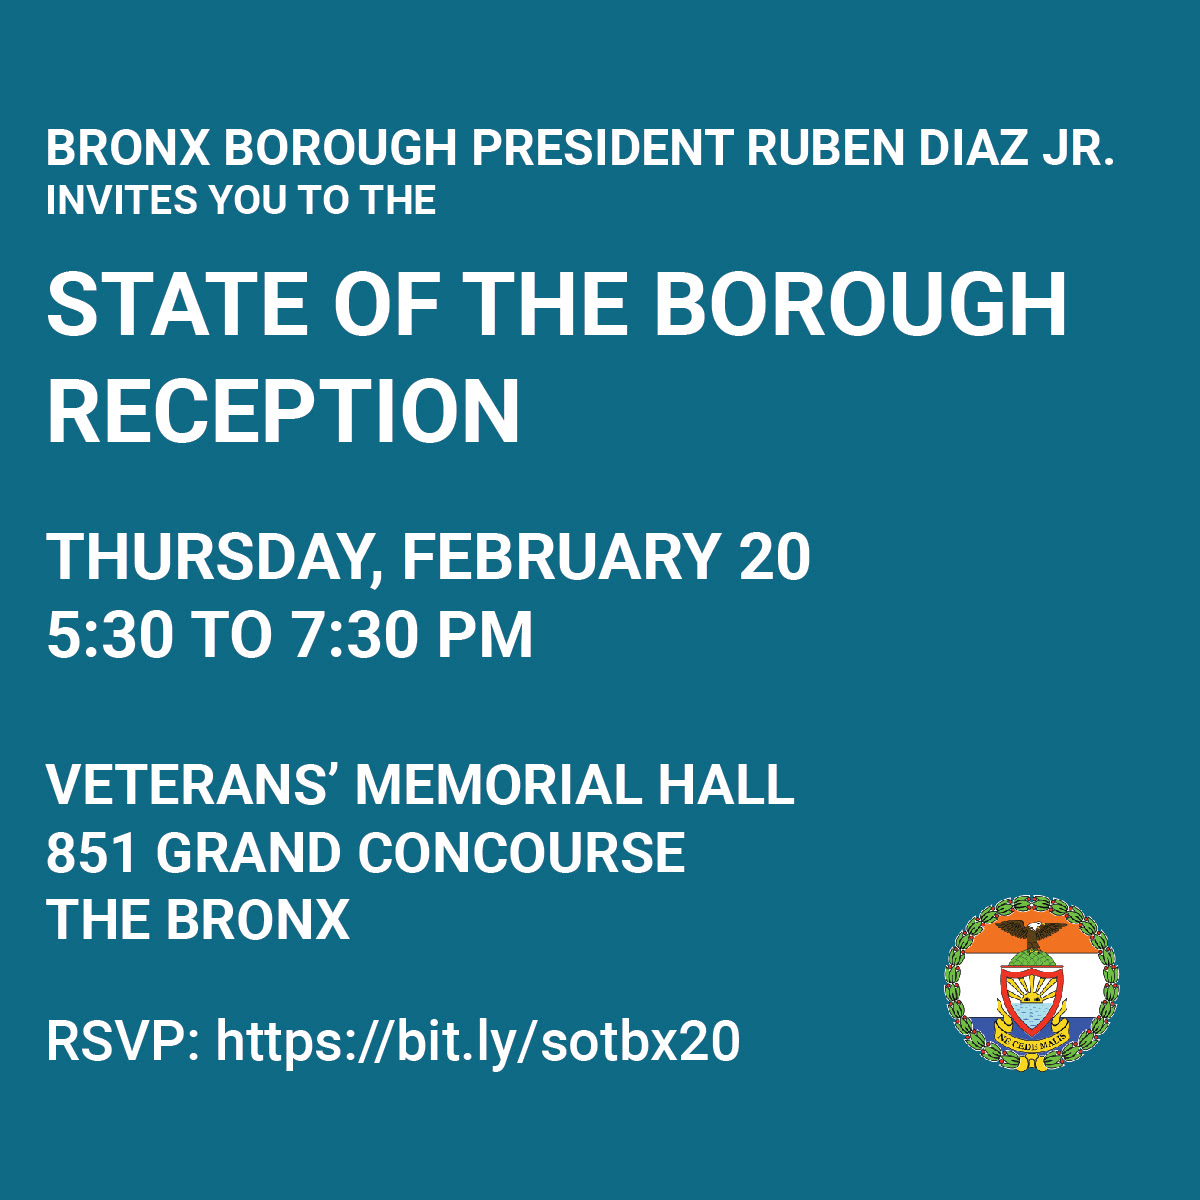 You're invited to the State of the Borough Reception on February 20, 2020, at 851 Grand Concourse at 5:30 PM. RSVP at bit.ly/sotbx20